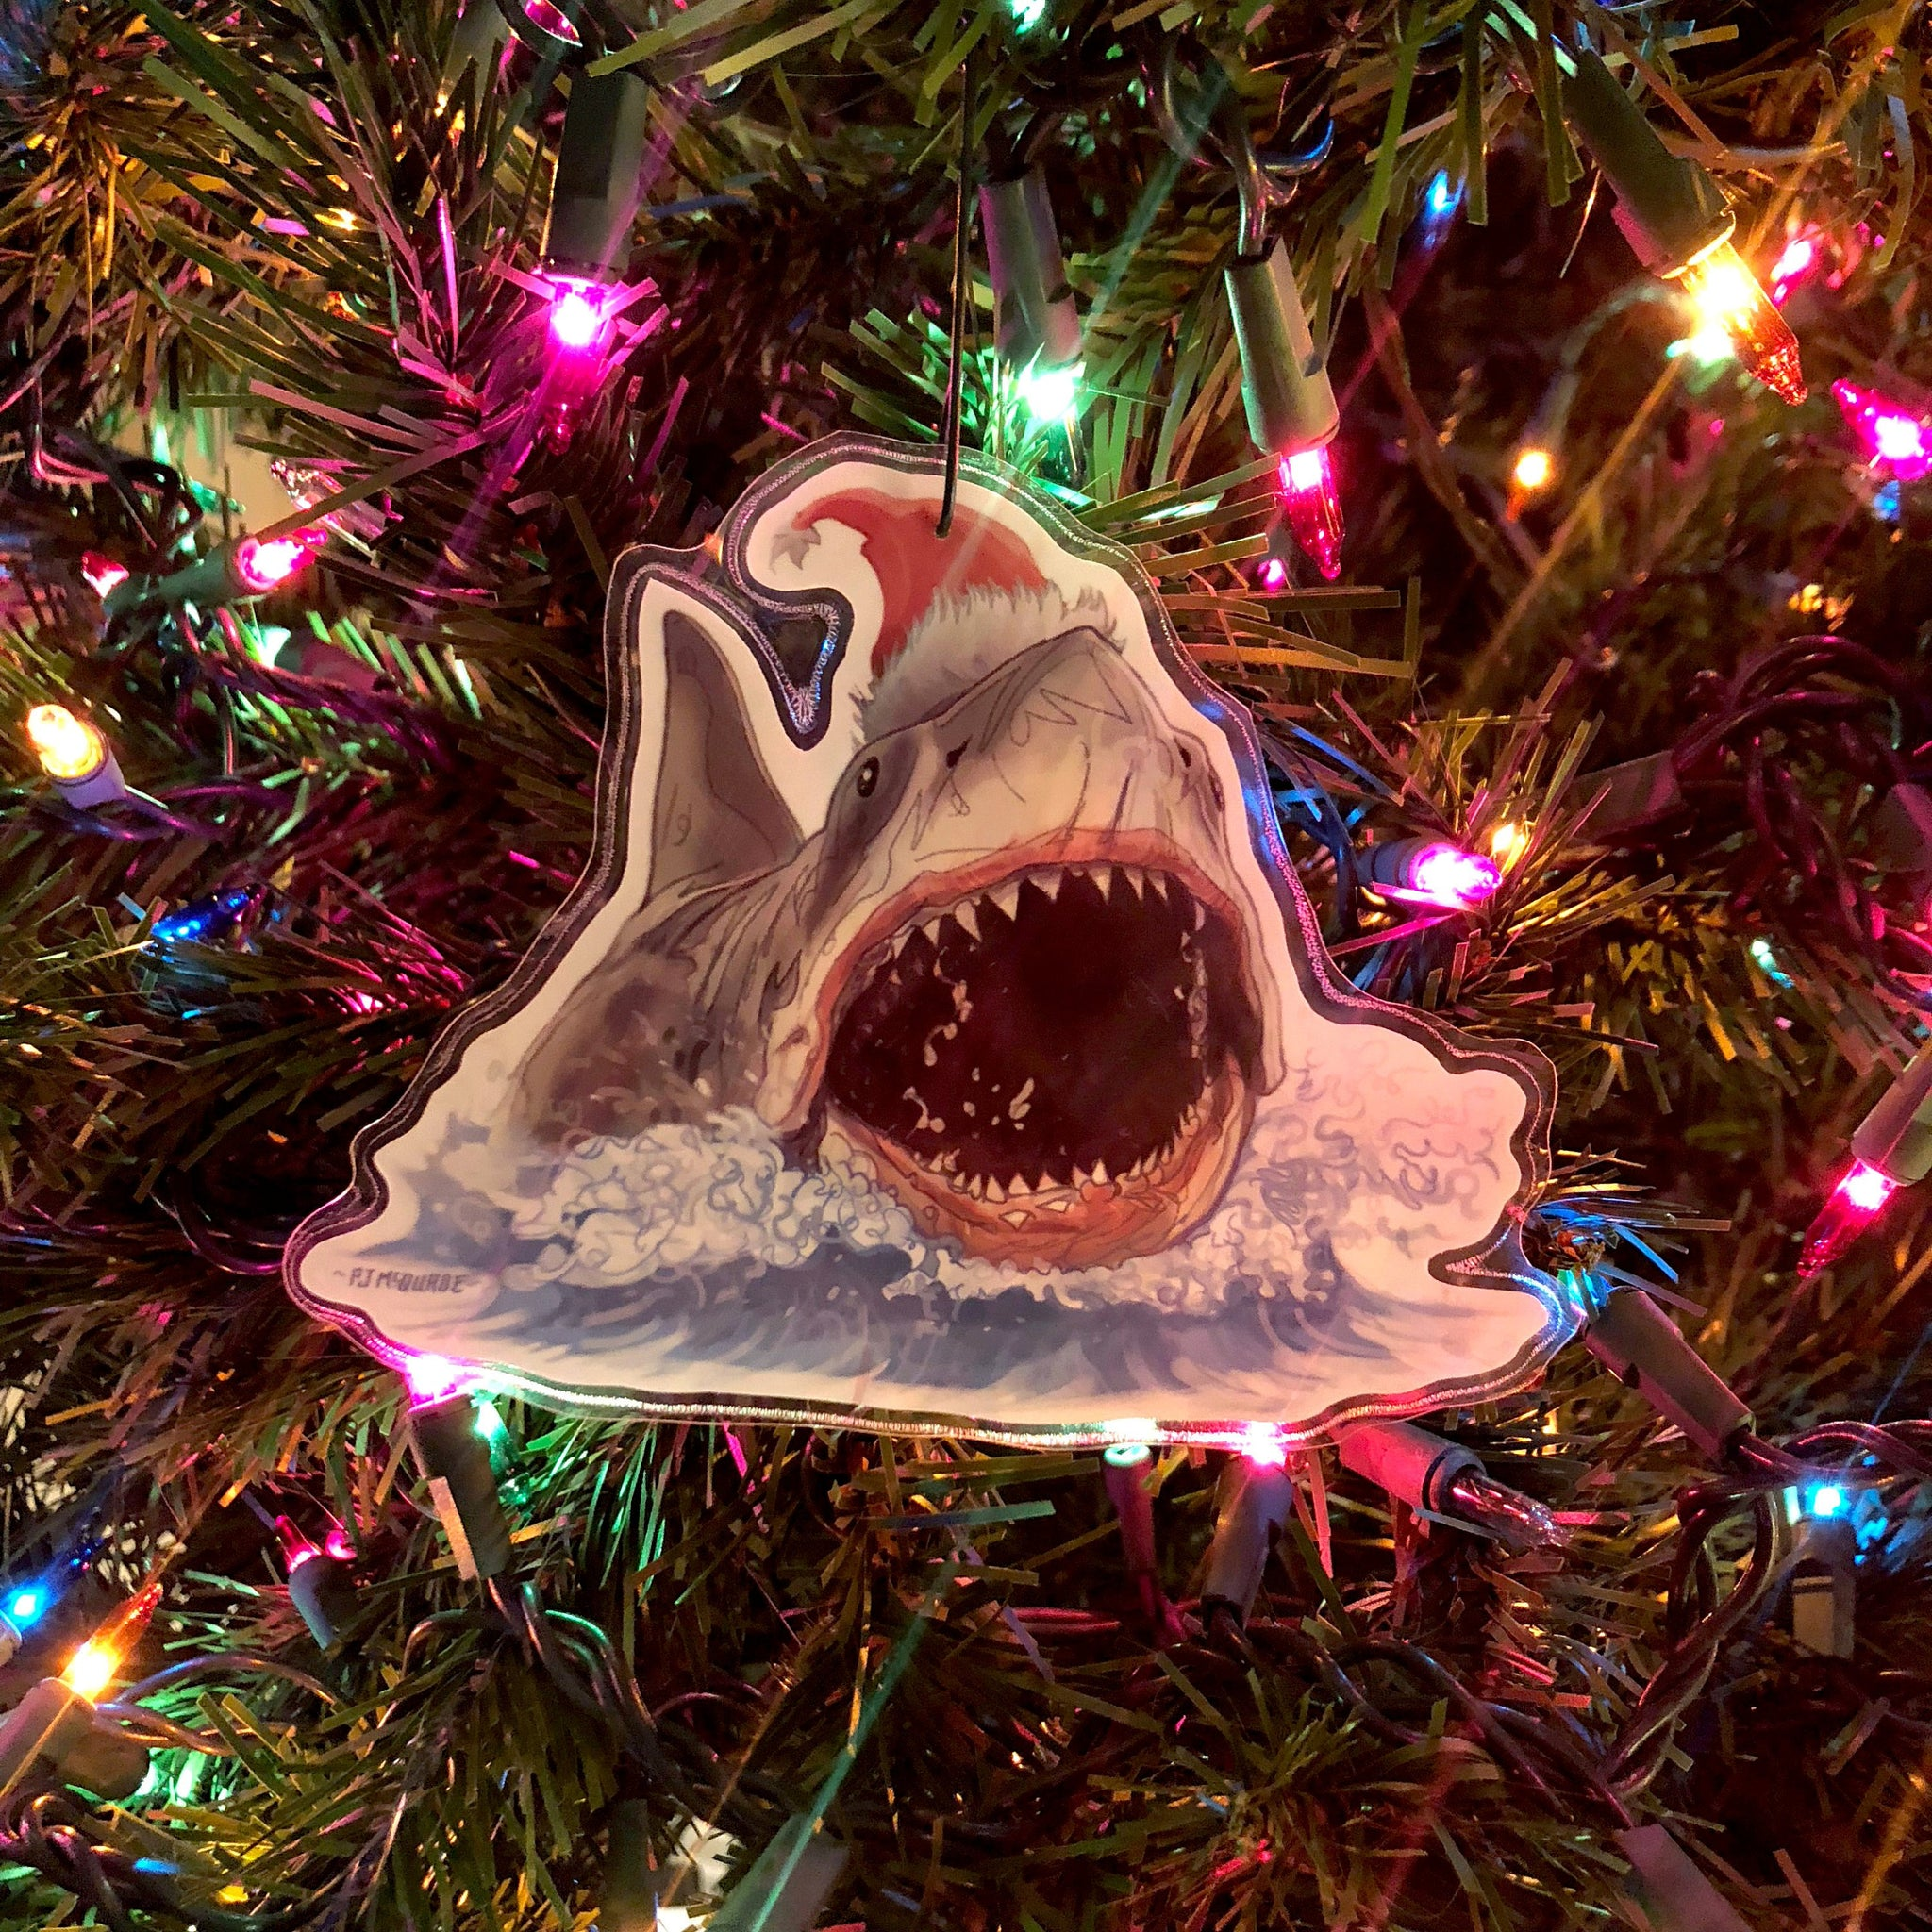 JAWS CHRISTMAS ORNAMENT!